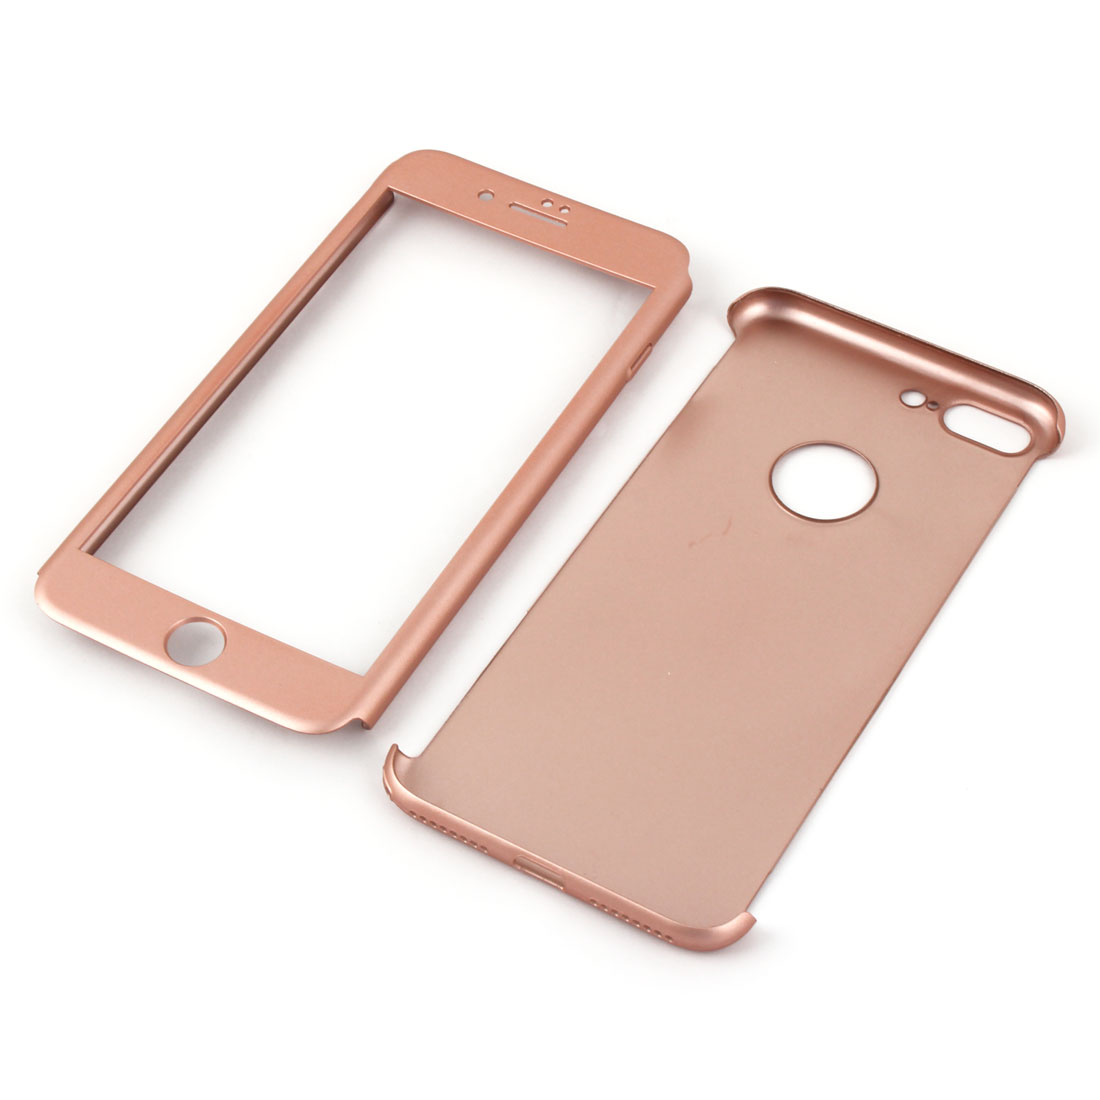 Cell Phone Dirtproof Hard Full Protection Case Rose Gold Tone for iPhone 7 Plus - image 4 of 7